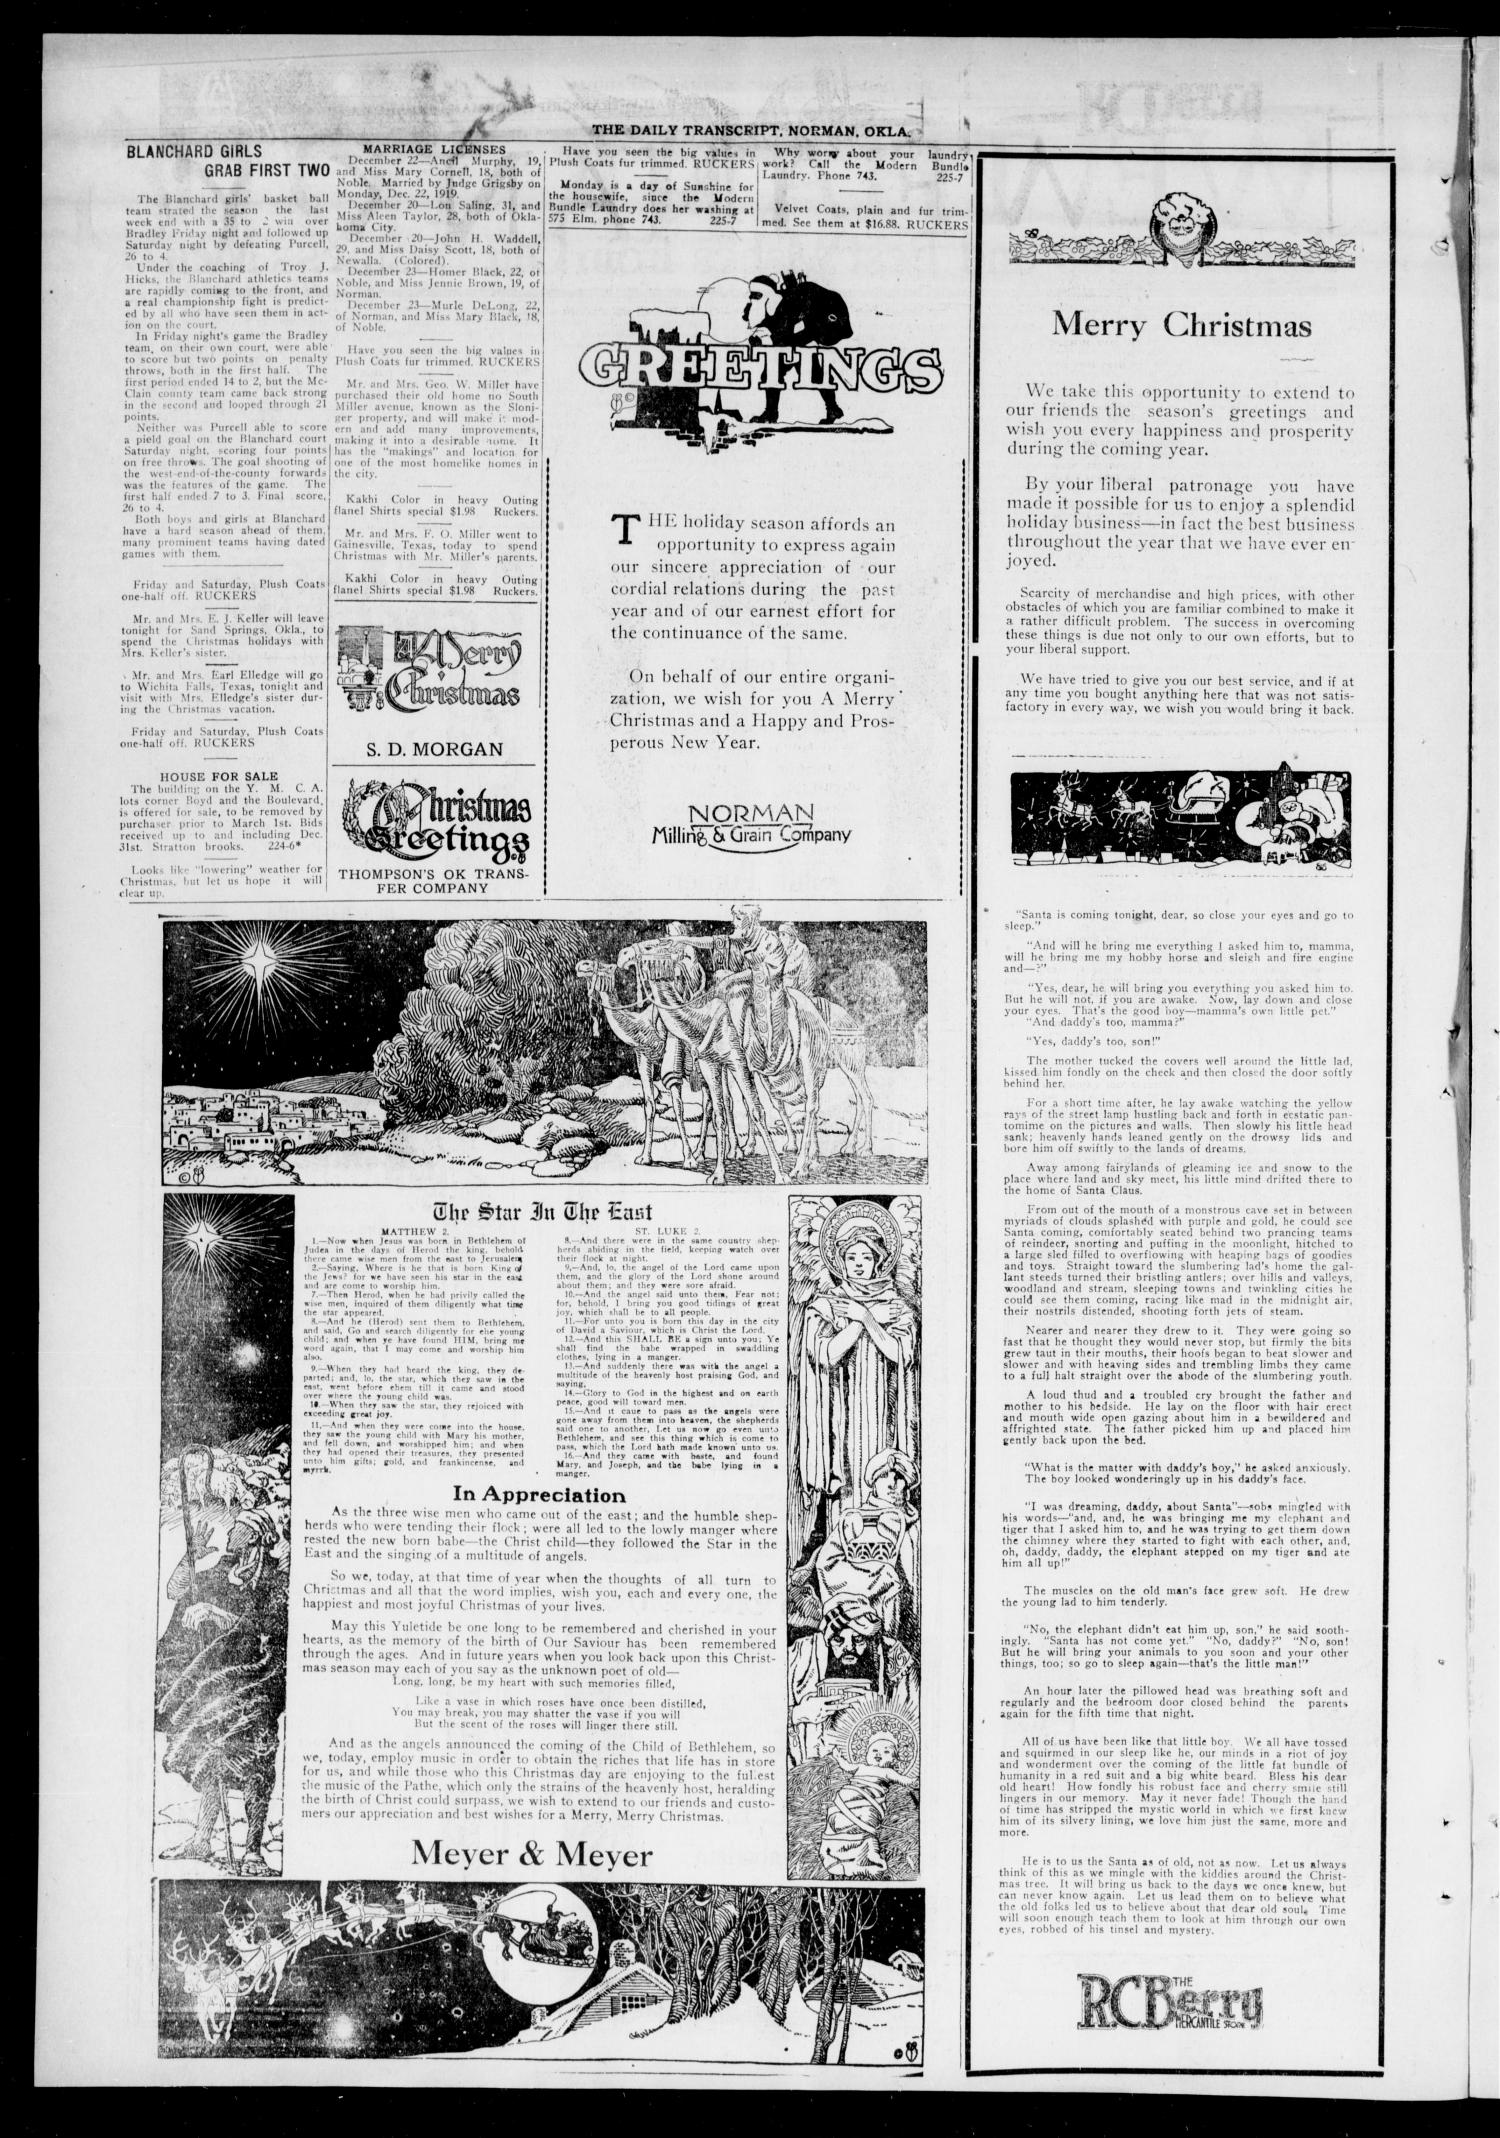 The Daily Transcript  (Norman, Okla.), Vol. 7, No. 226, Ed. 1 Wednesday, December 24, 1919                                                                                                      [Sequence #]: 4 of 4